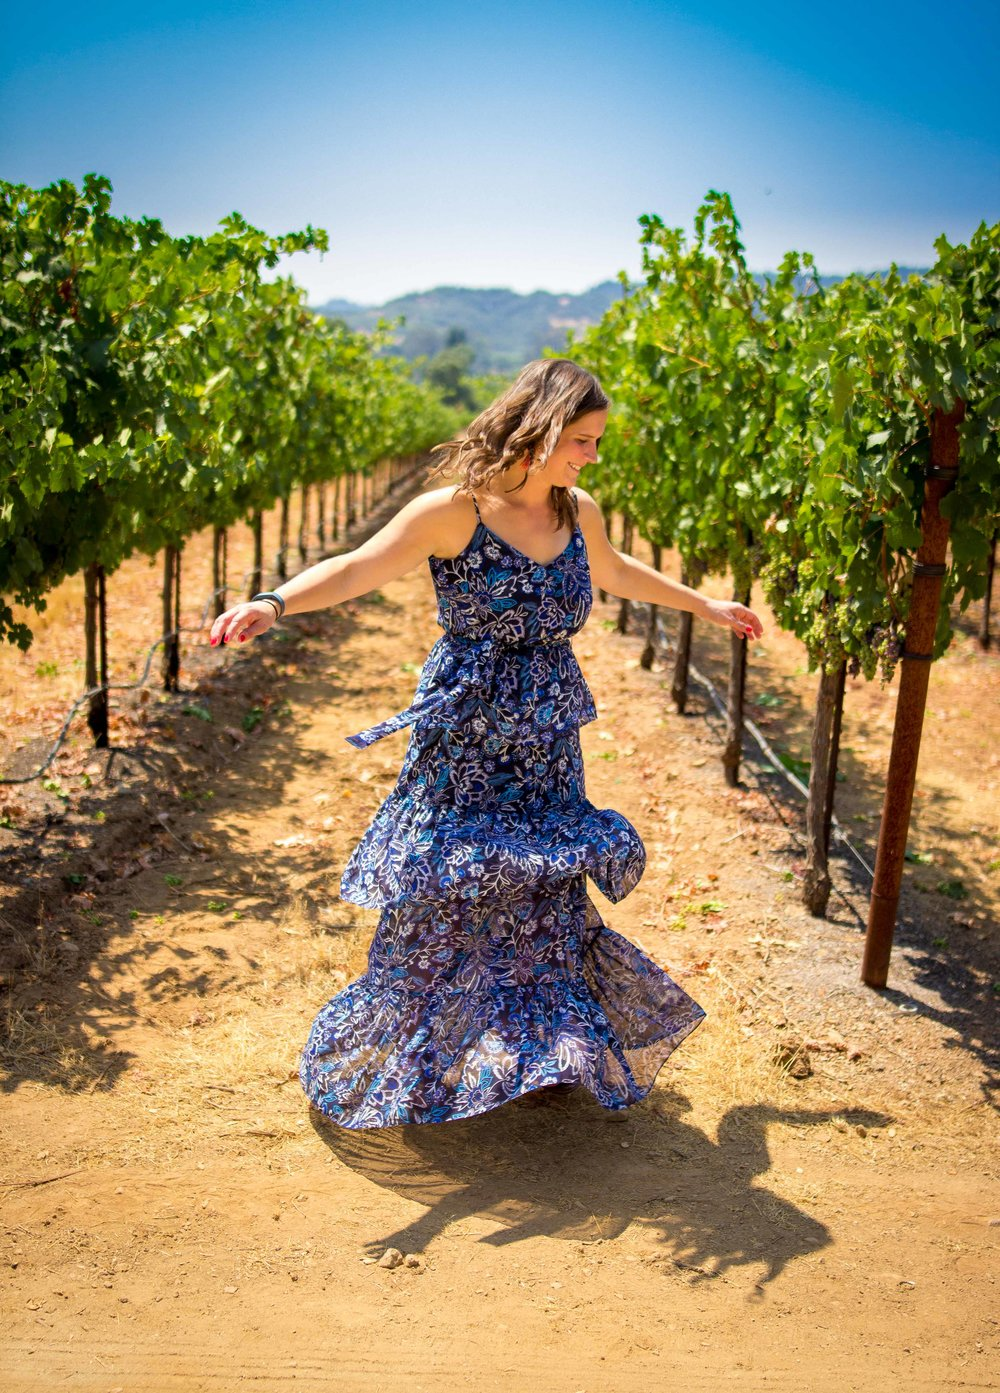 Twirling through the weekend